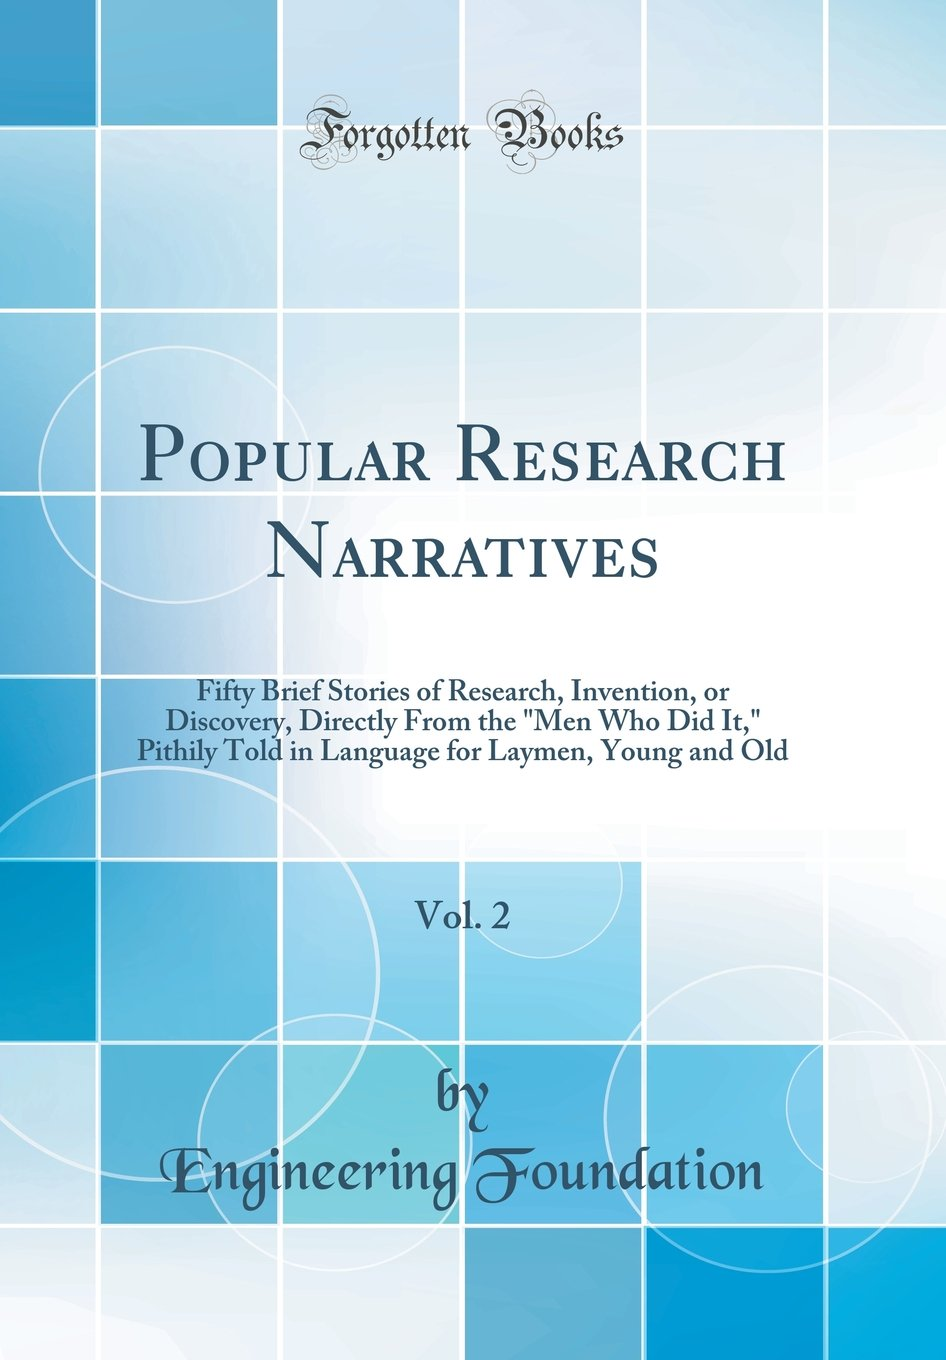 """Download Popular Research Narratives, Vol. 2: Fifty Brief Stories of Research, Invention, or Discovery, Directly from the """"Men Who Did It,"""" Pithily Told in Language for Laymen, Young and Old (Classic Reprint) ebook"""